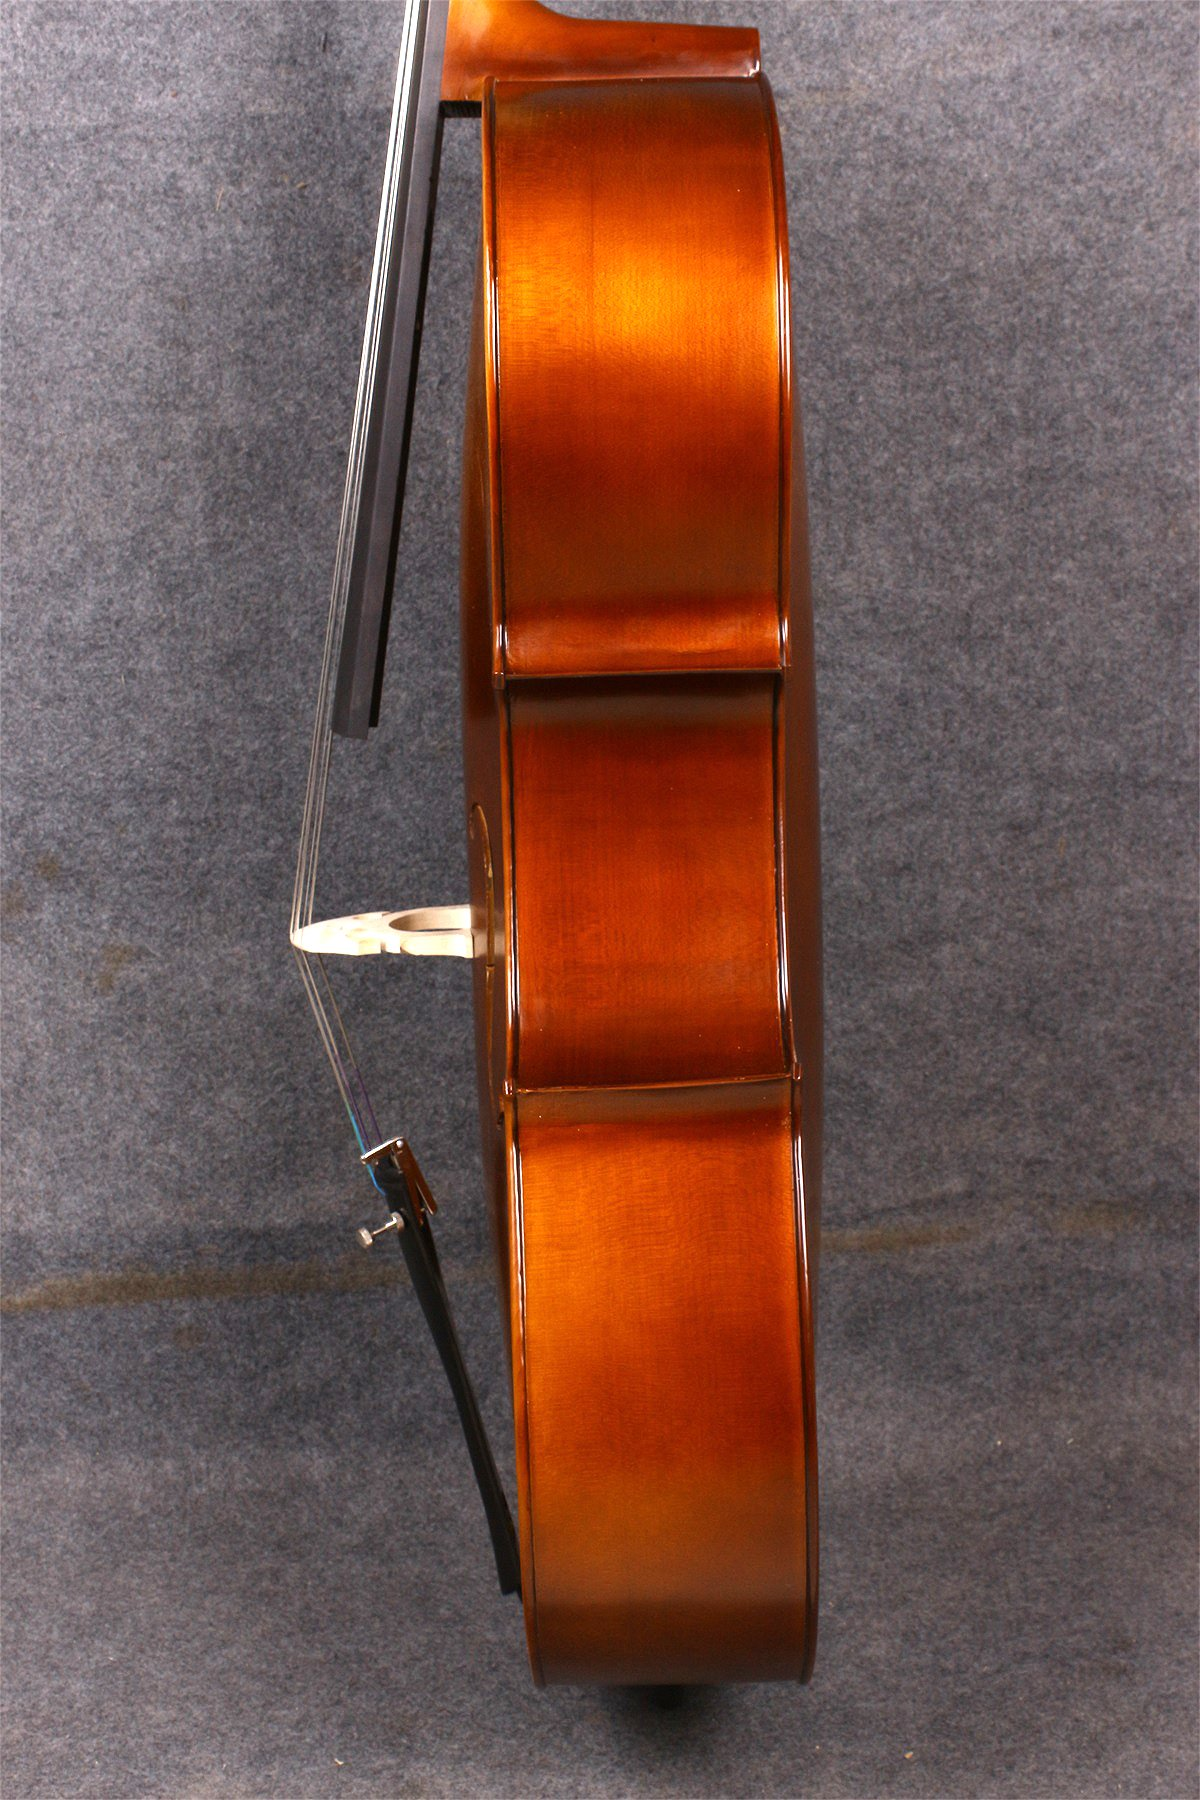 Yinfente 4/4 5 String Cello Acoustic Model Full size Spruce Maple wood Free Cello bow Bag Sweet Sound by yinfente (Image #8)